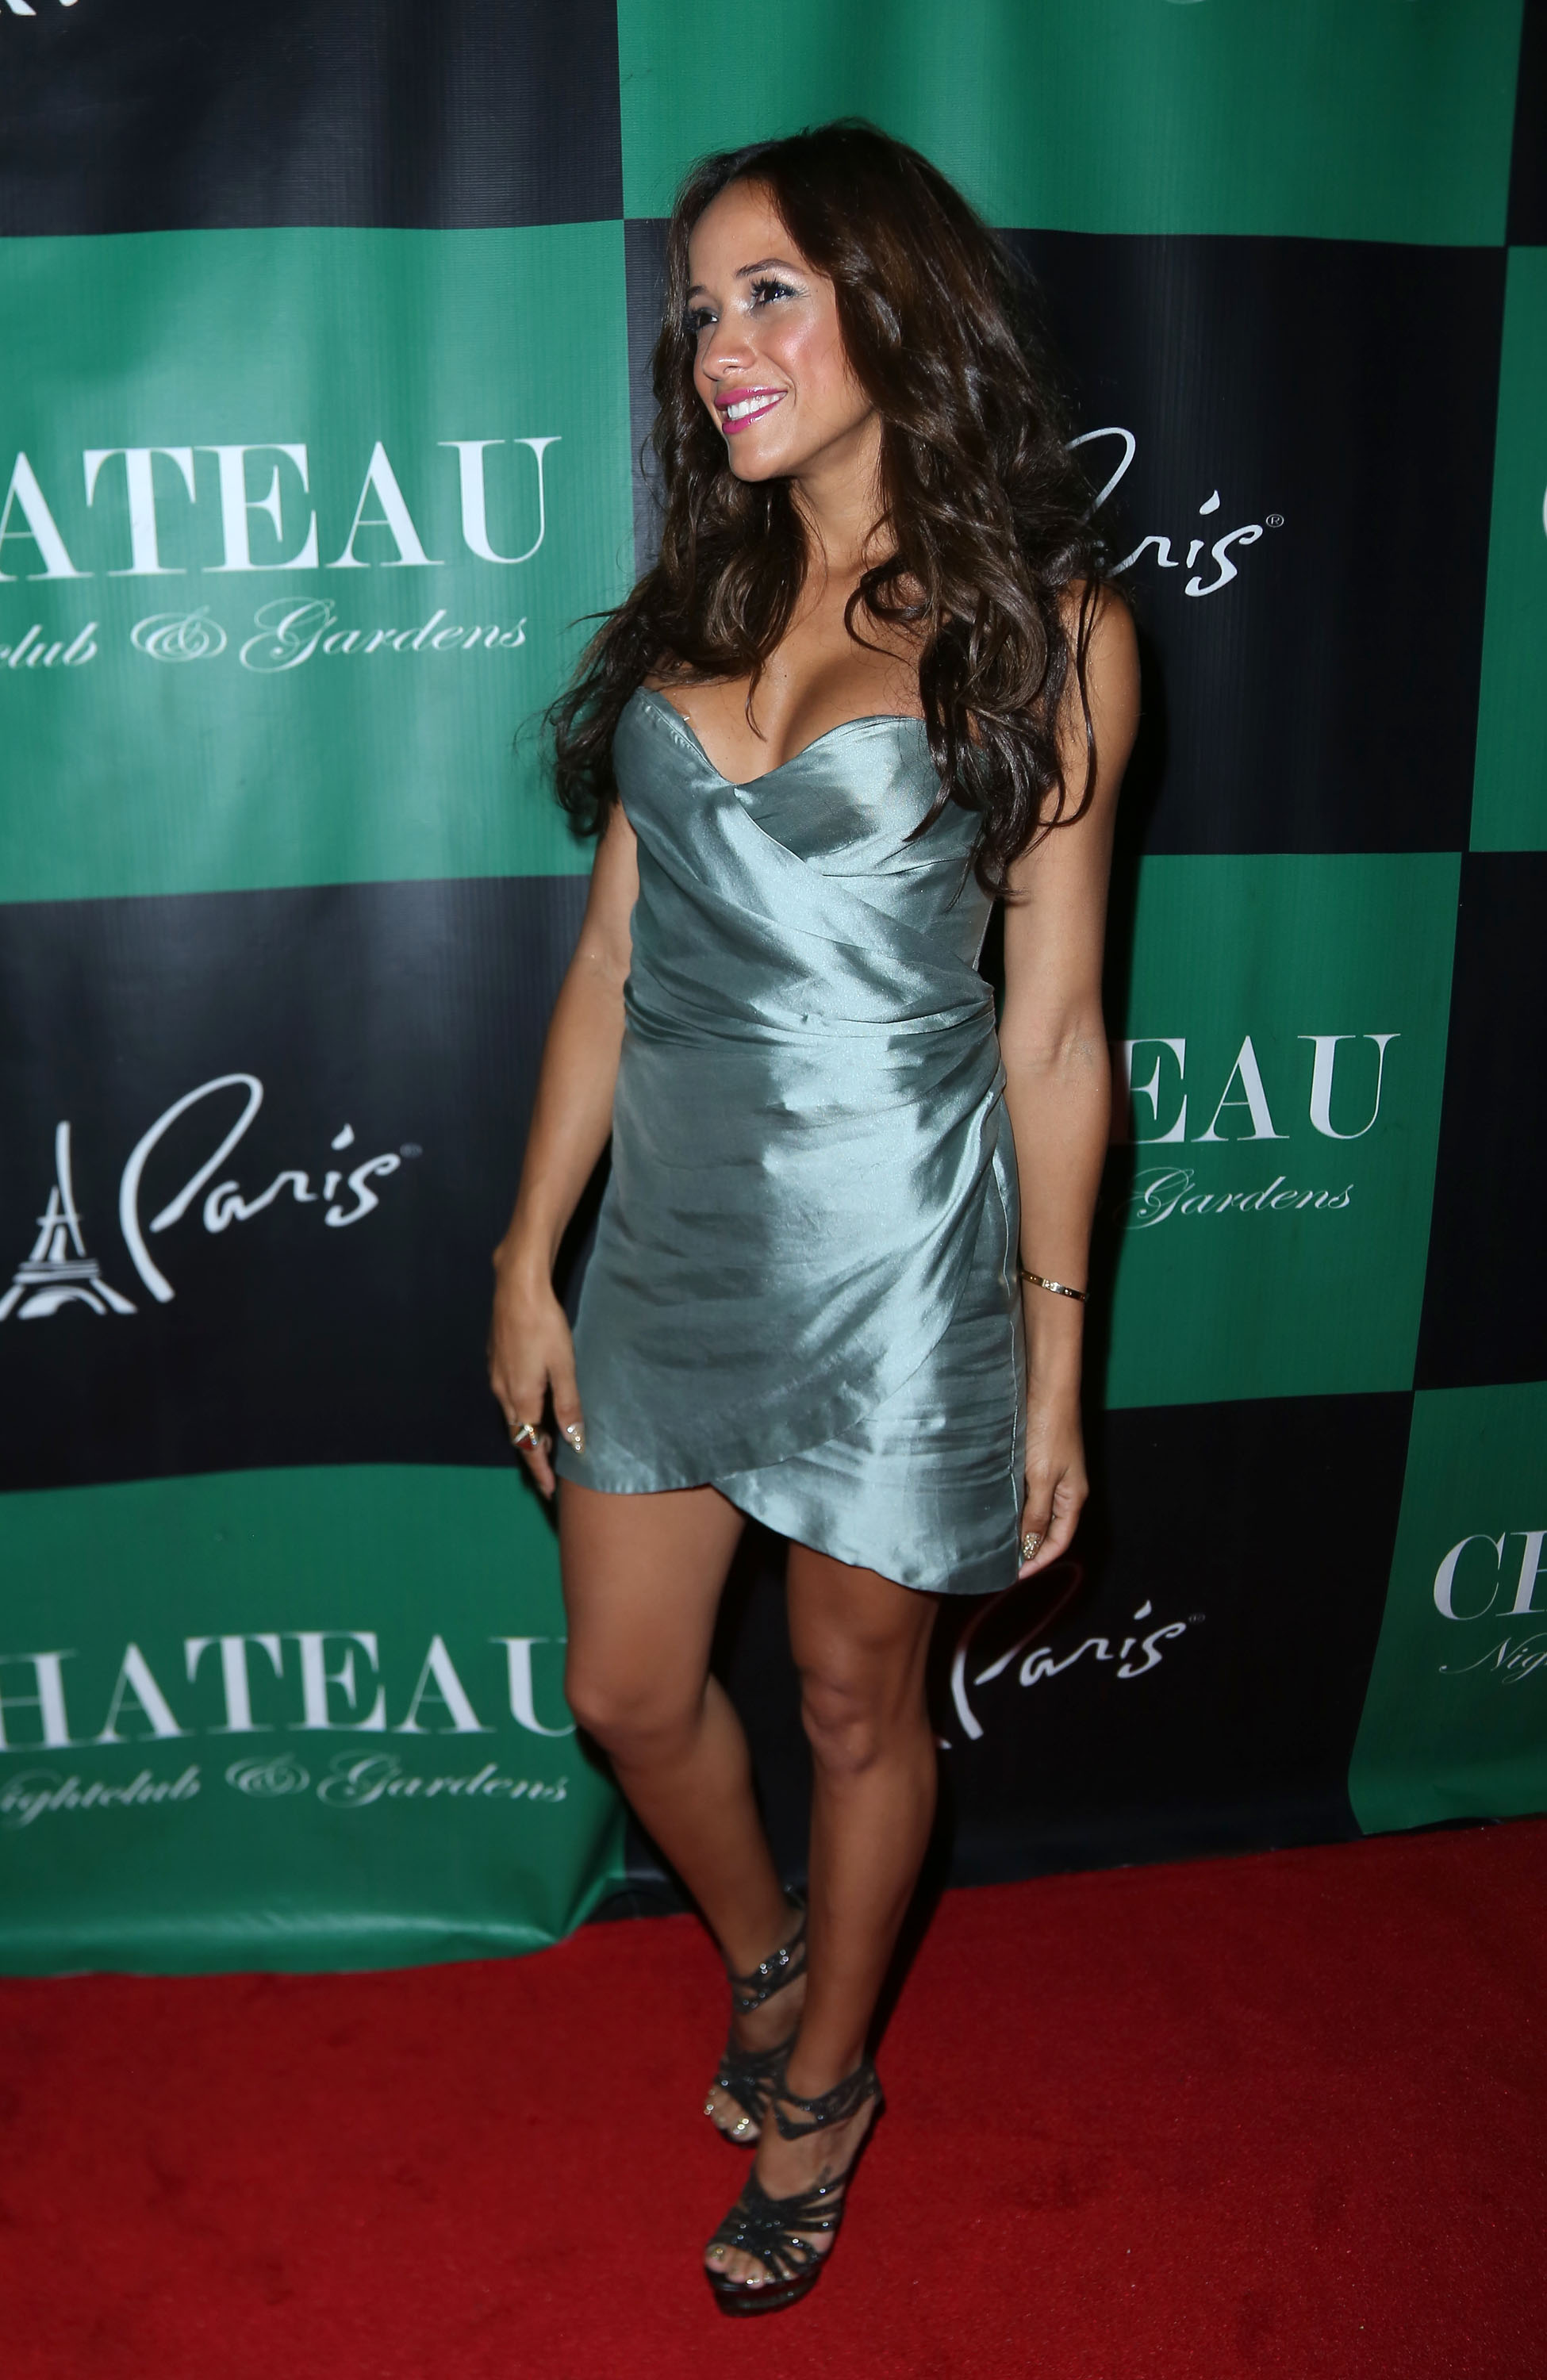 Dania Ramirez - Chateau Nightclub & Gardens at the Paris Las Vegas in Las Vegas on August 8, 2012